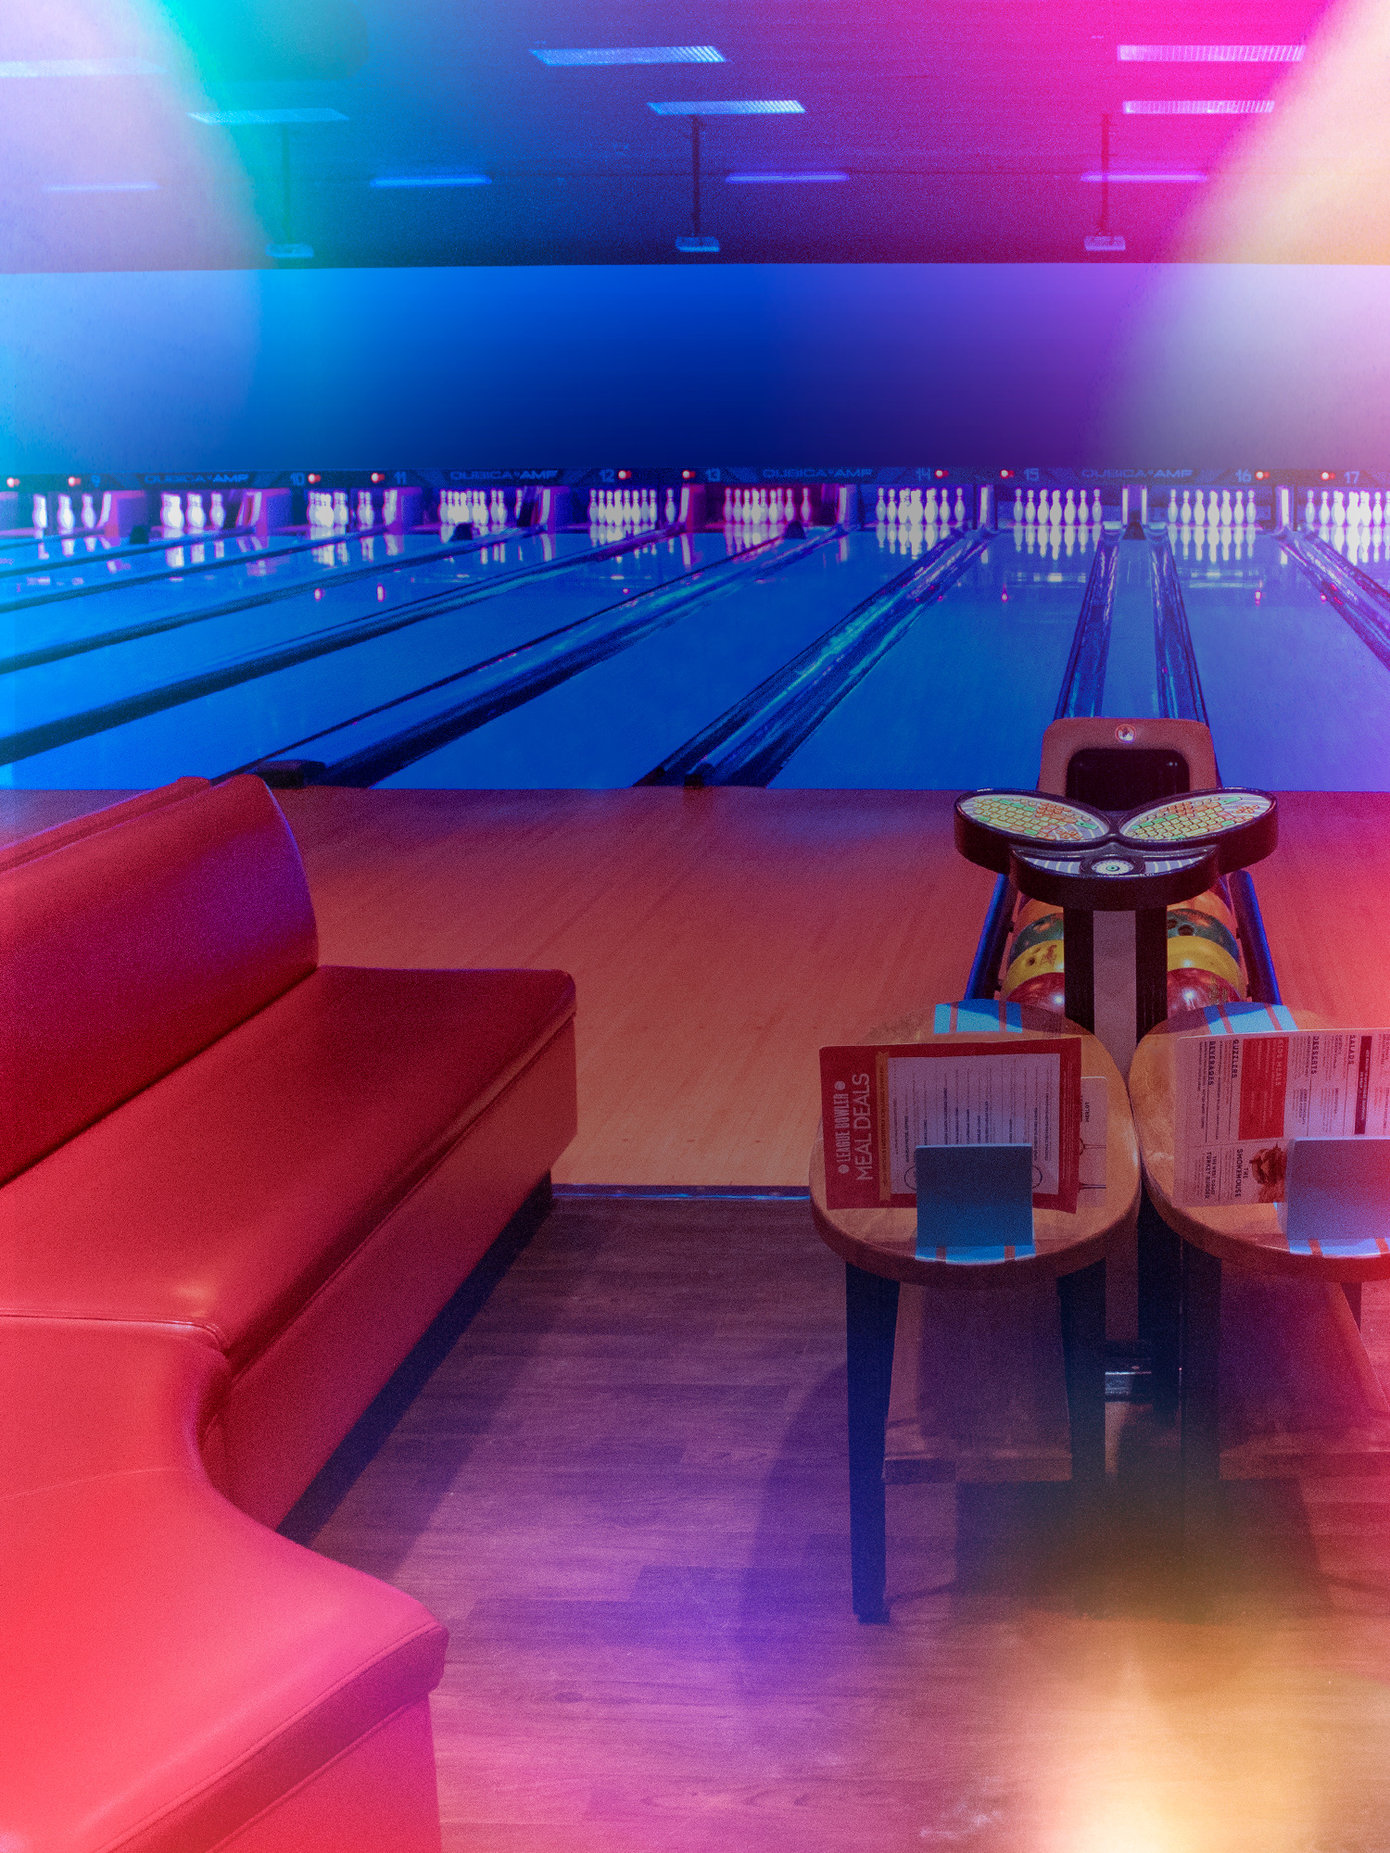 front view of bowling lanes with red plush couches